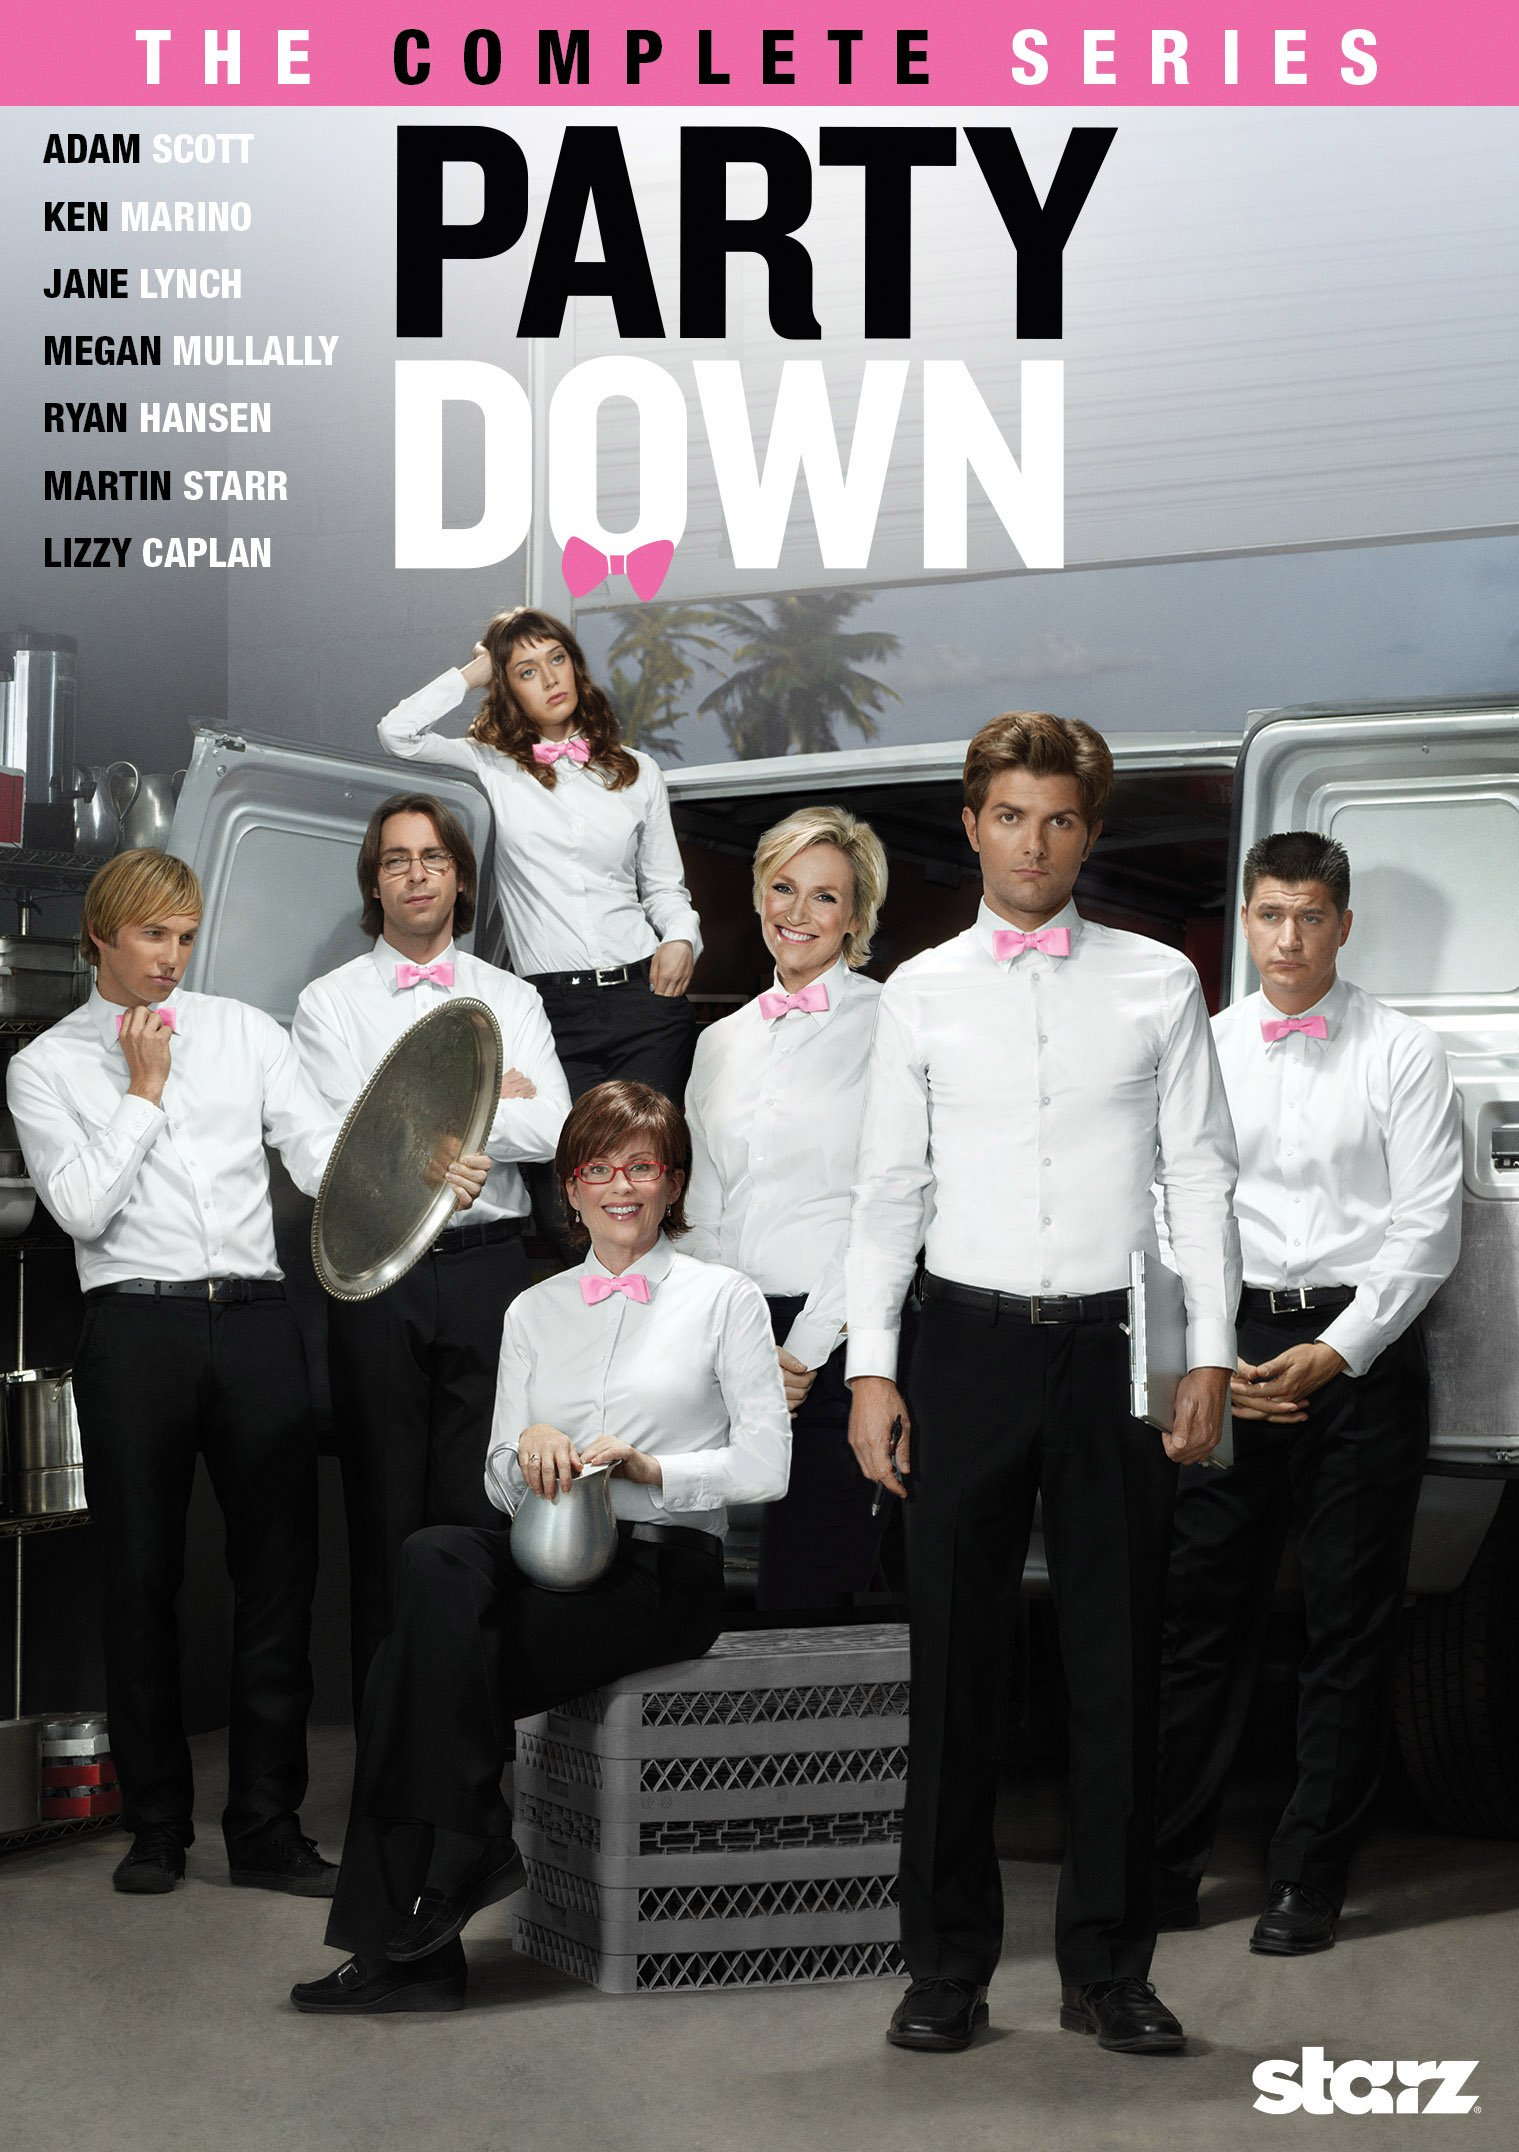 DVD : Party Down: The Complete Series (Boxed Set, 4 Disc)